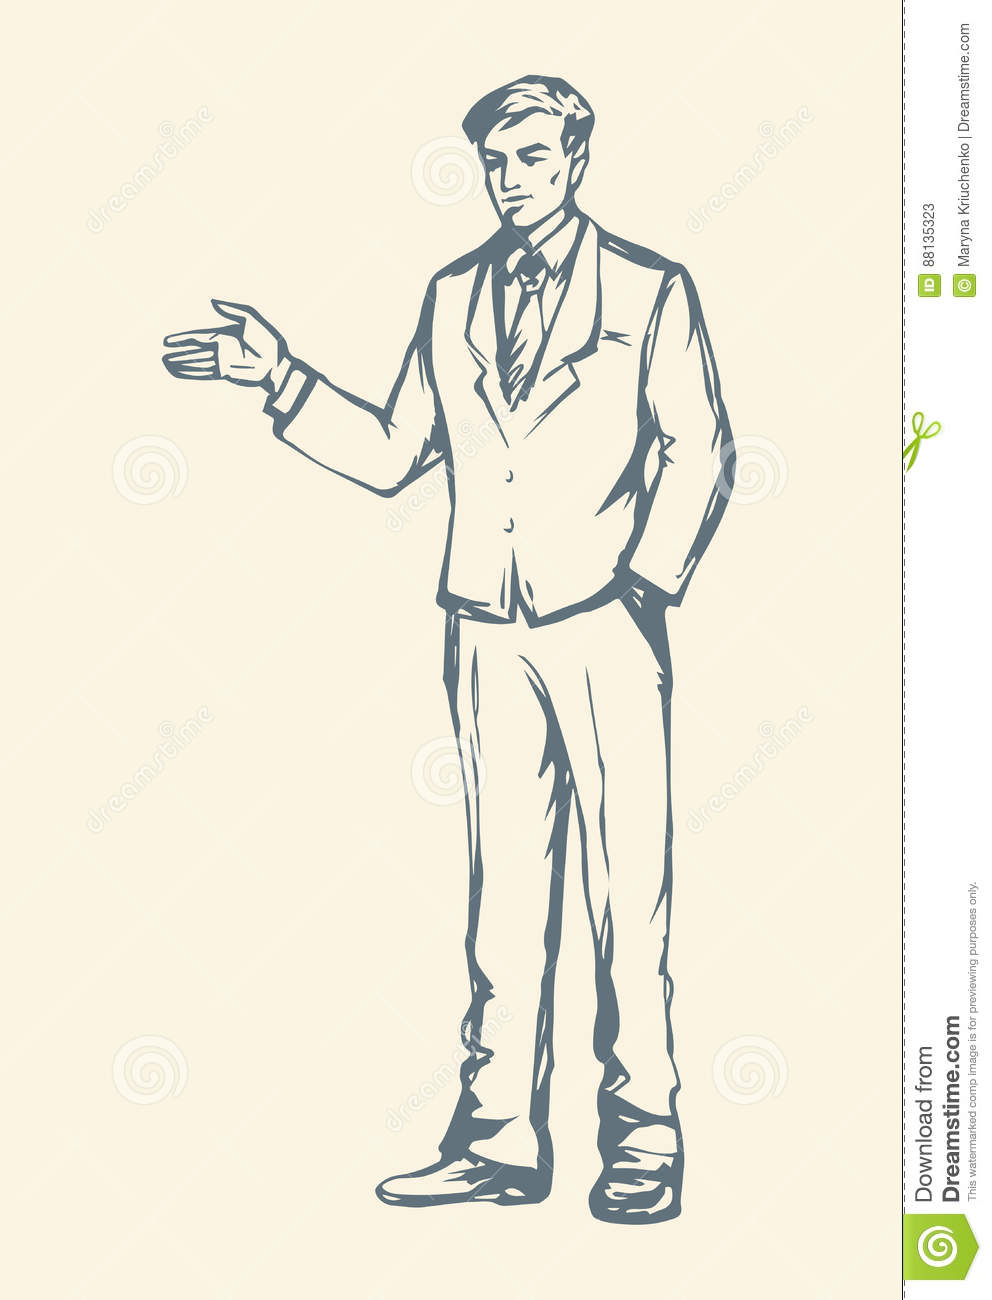 Adult handsome bearded guy person at casual labor isolated on white backdrop freehand outline ink hand drawn picture sketchy in modern art scribble style